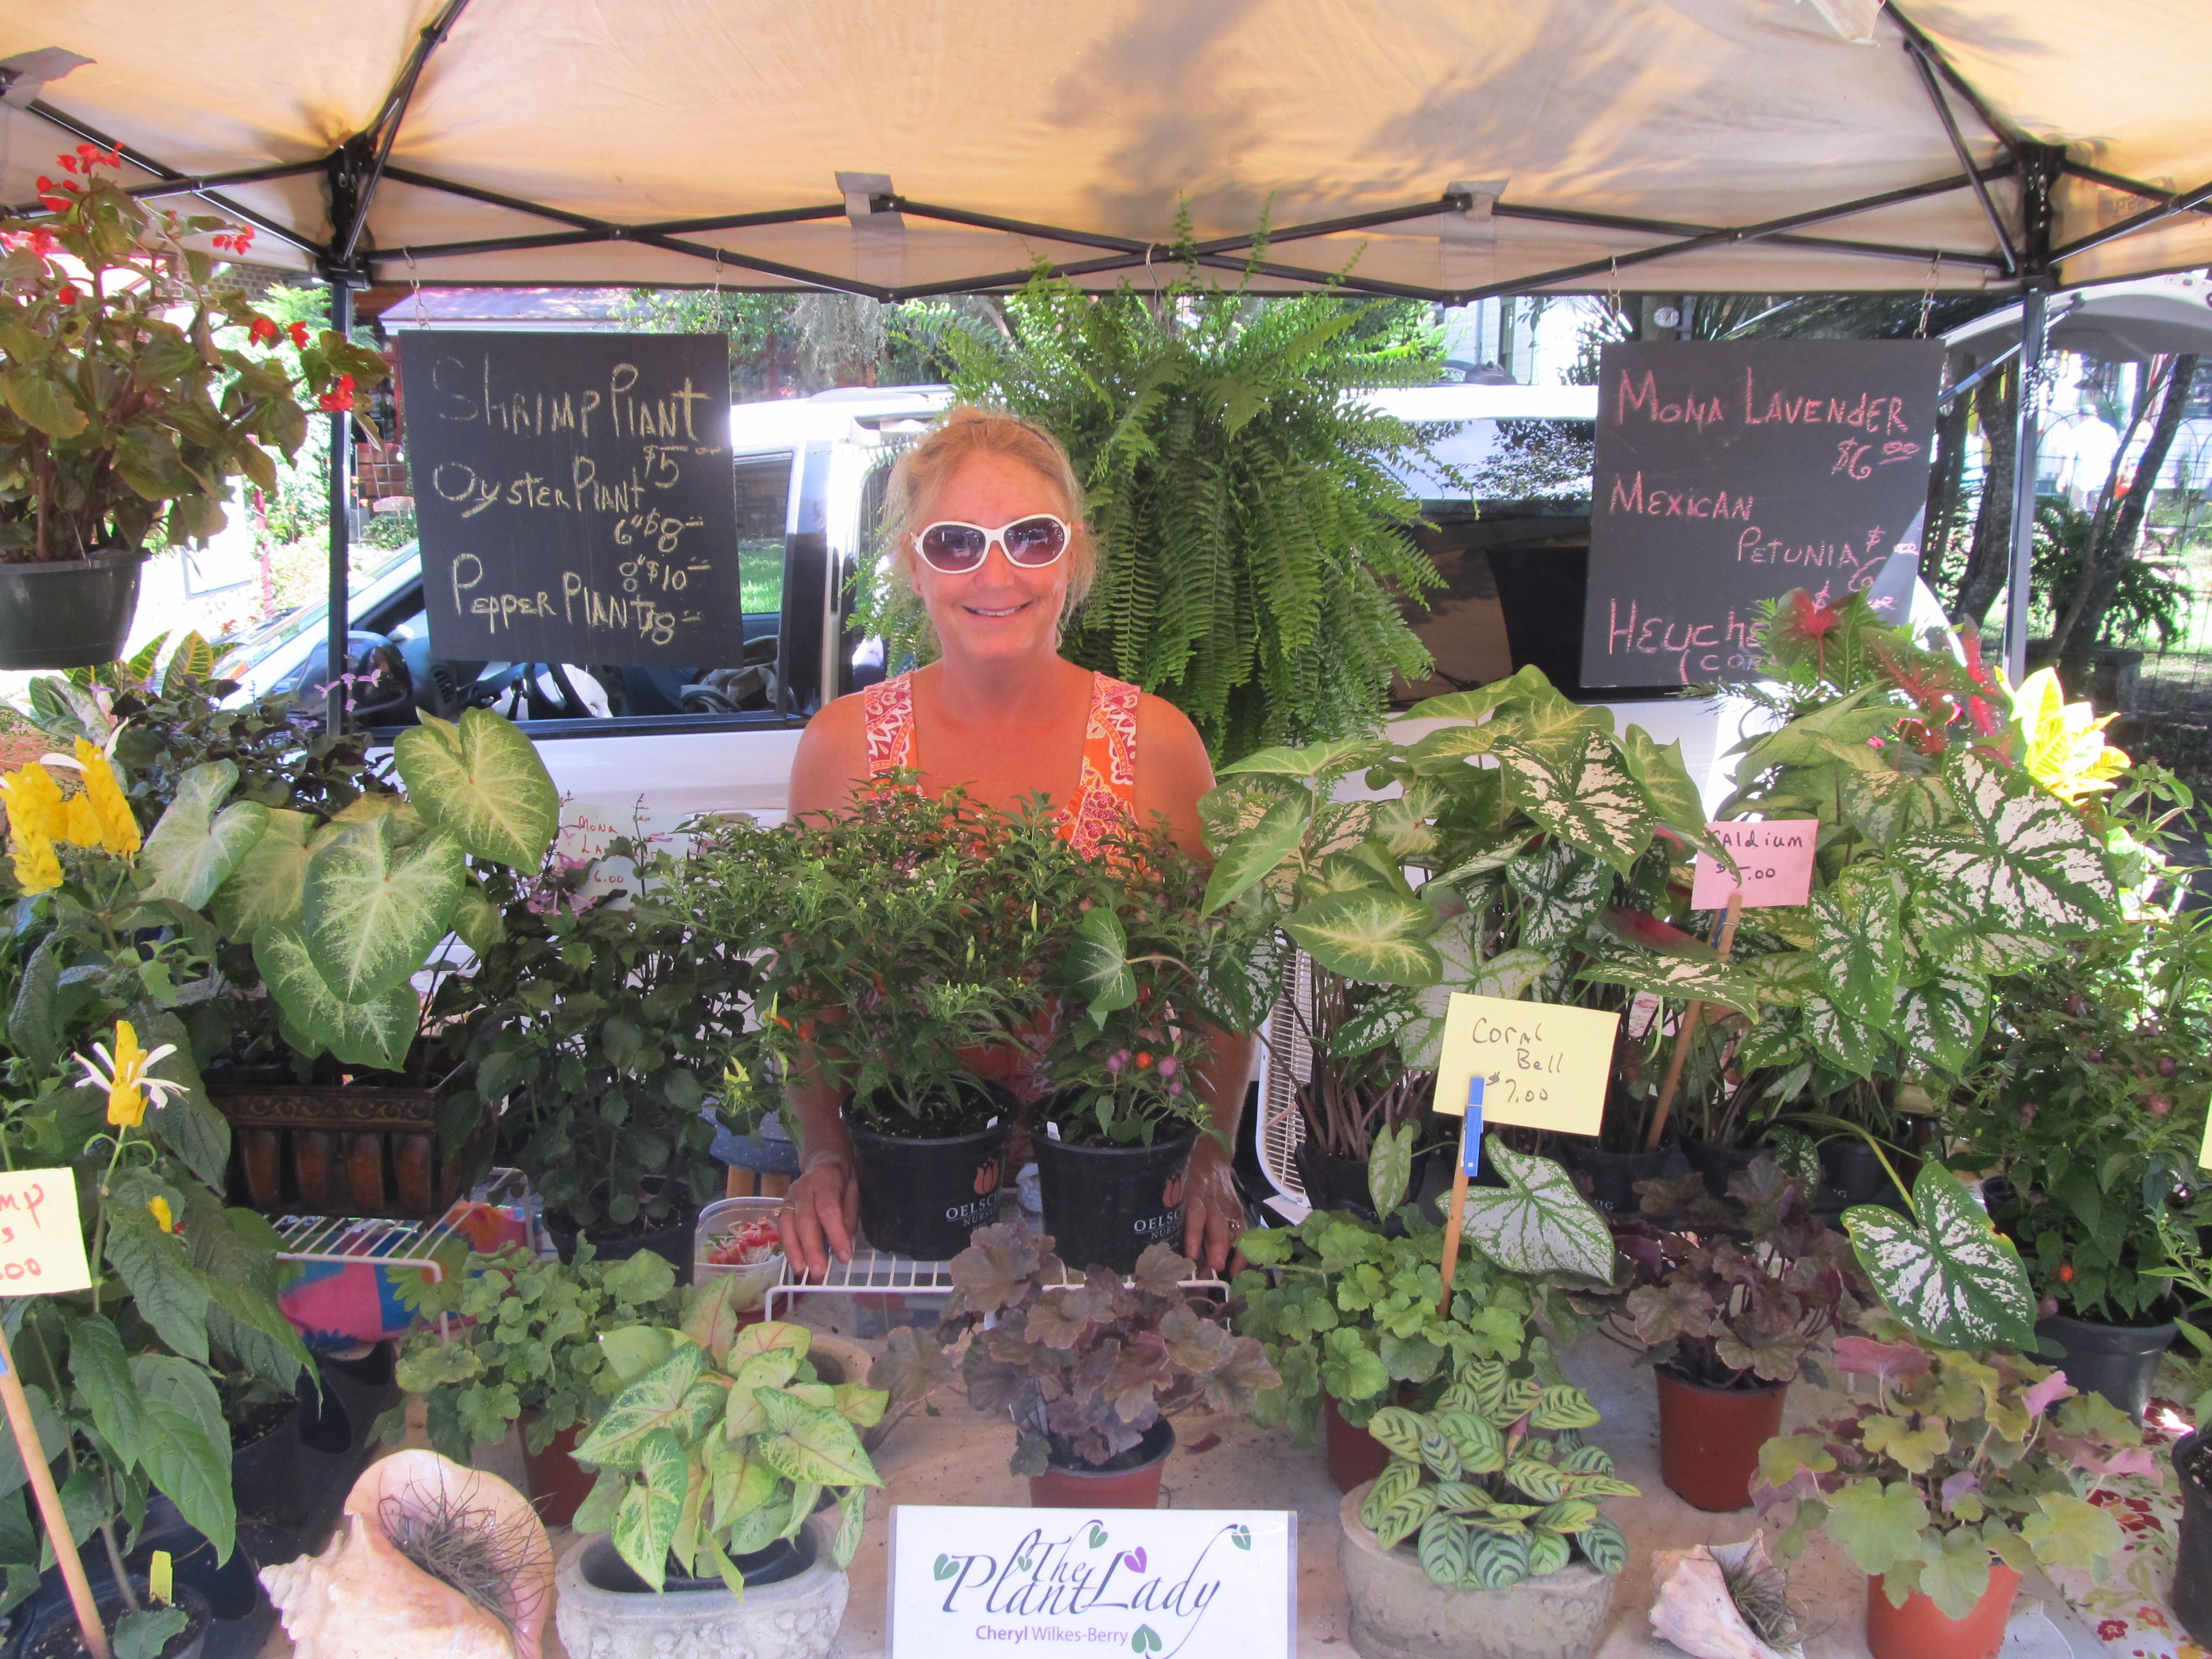 The Plant Lady; Owner Cheryl WilkesBerry; From Bluffton